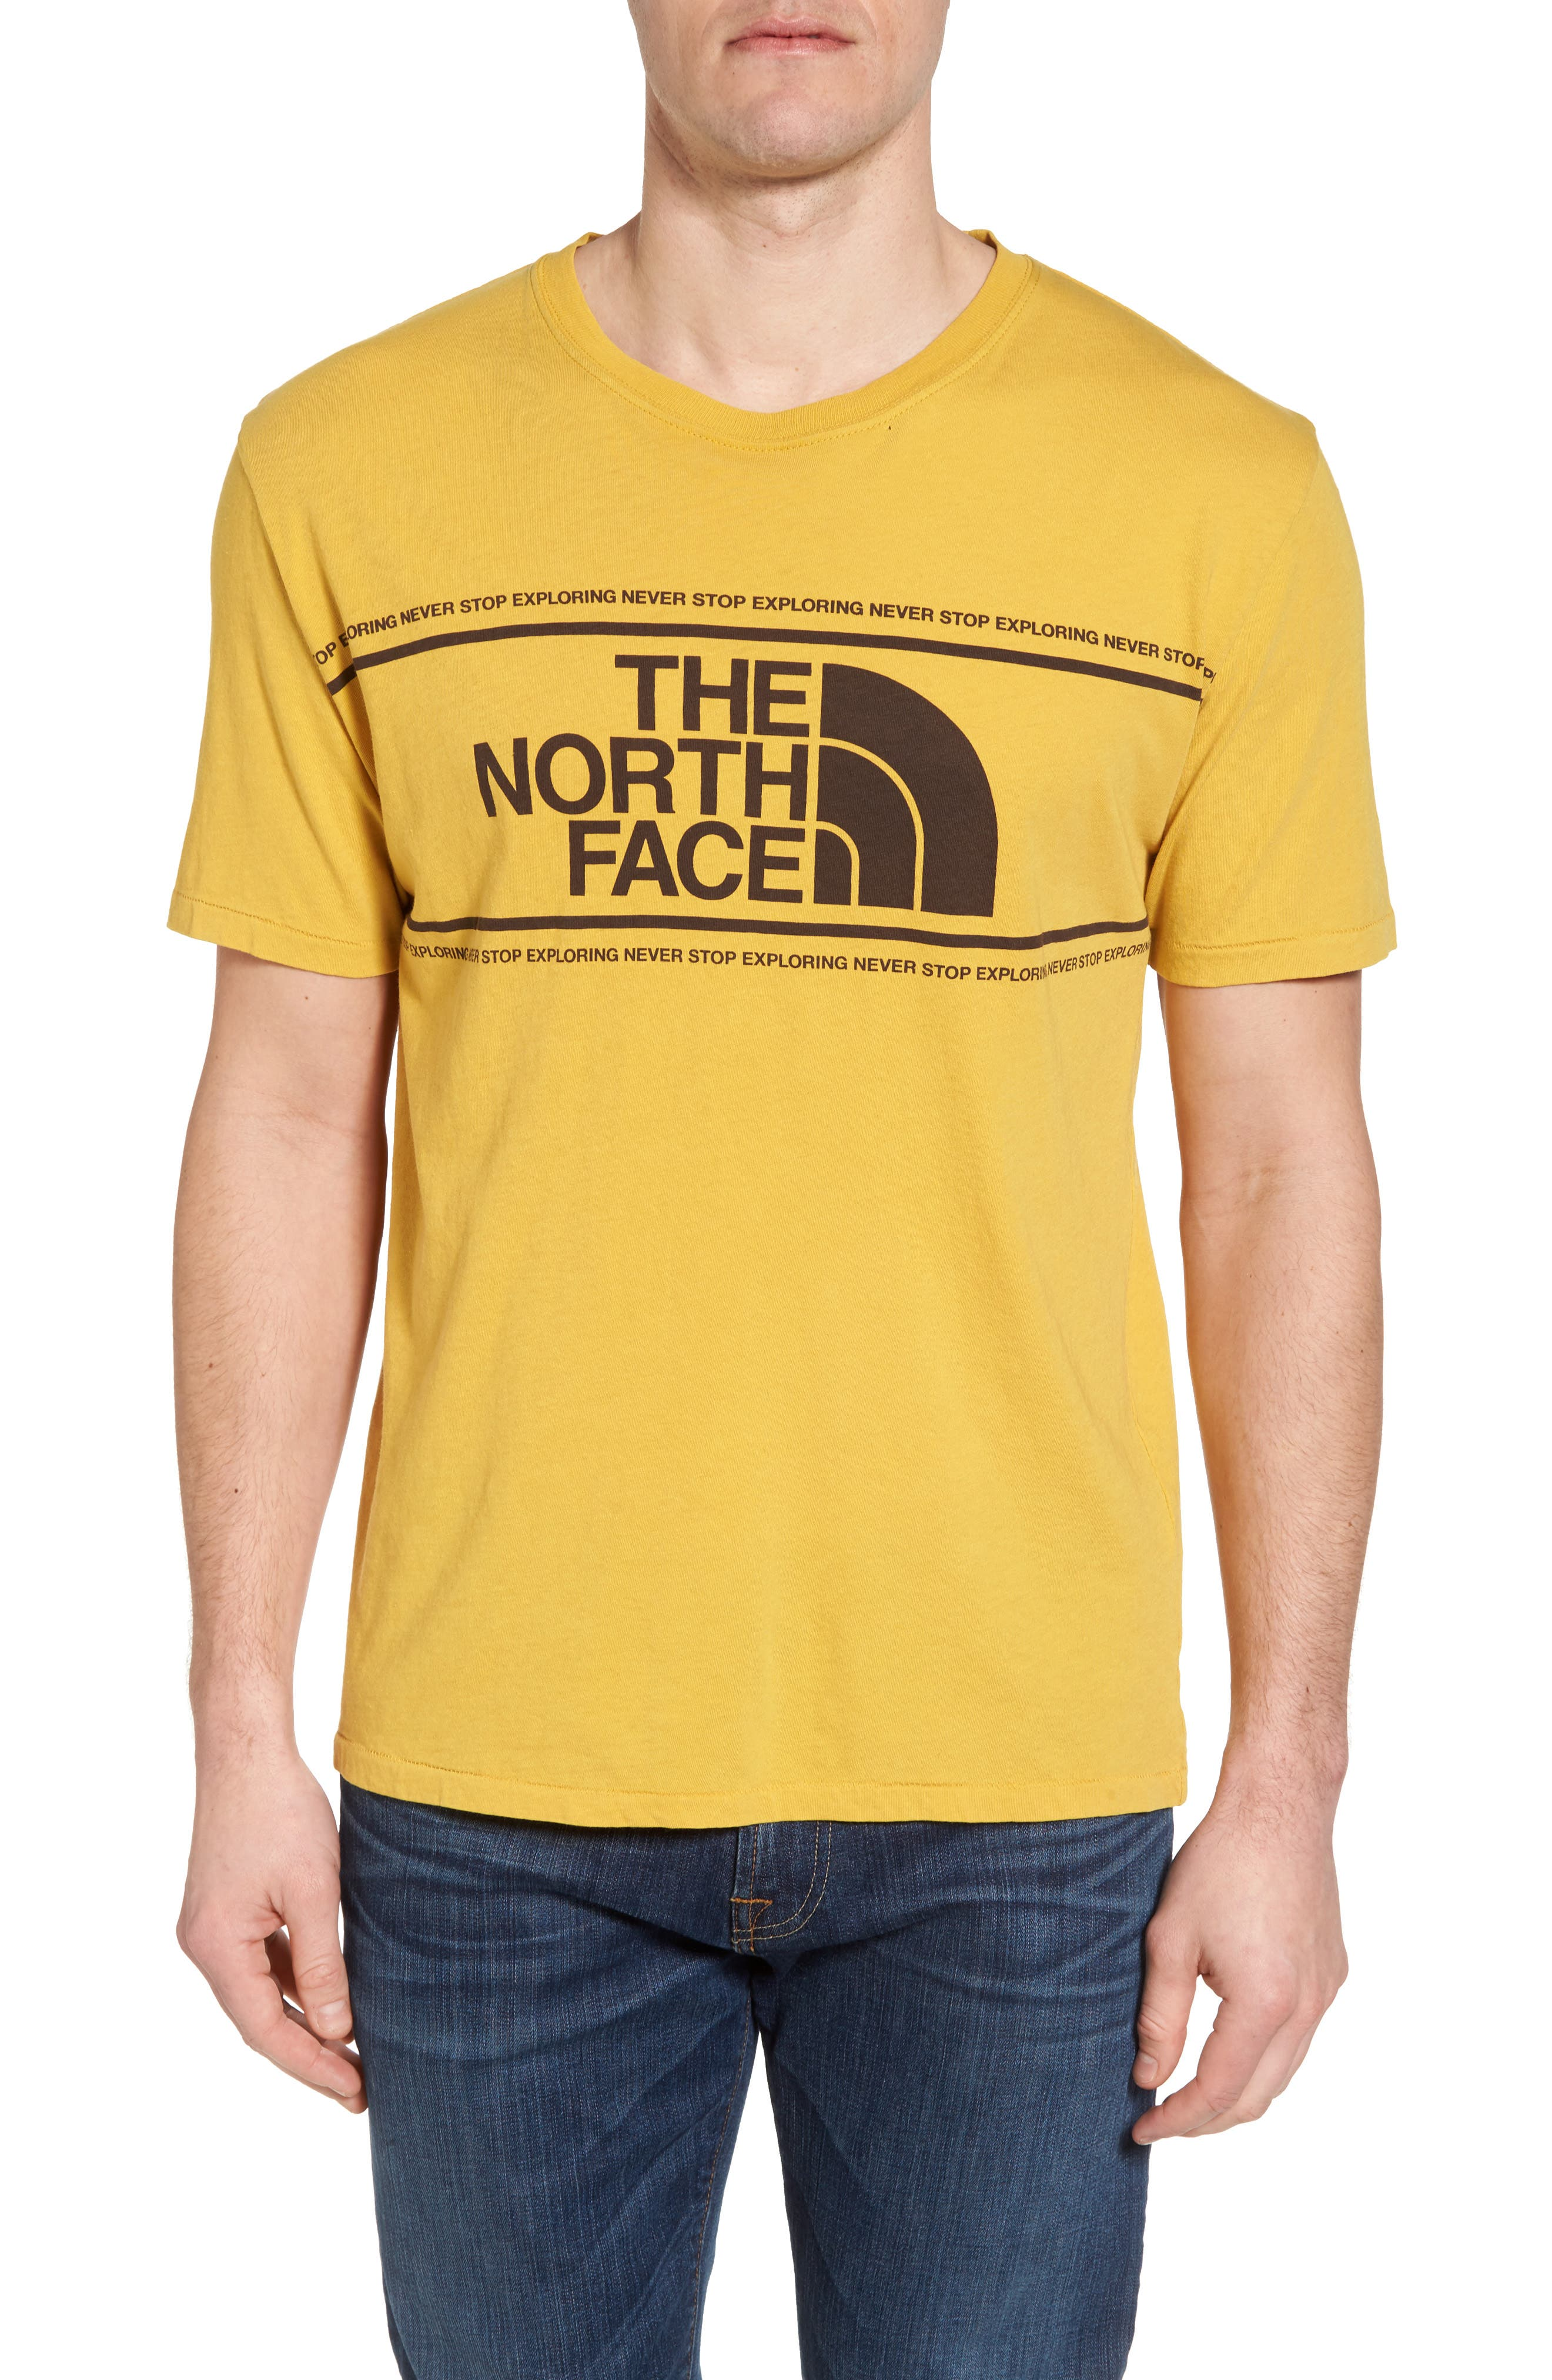 The North Face Well Loved Edge to Edge T-Shirt